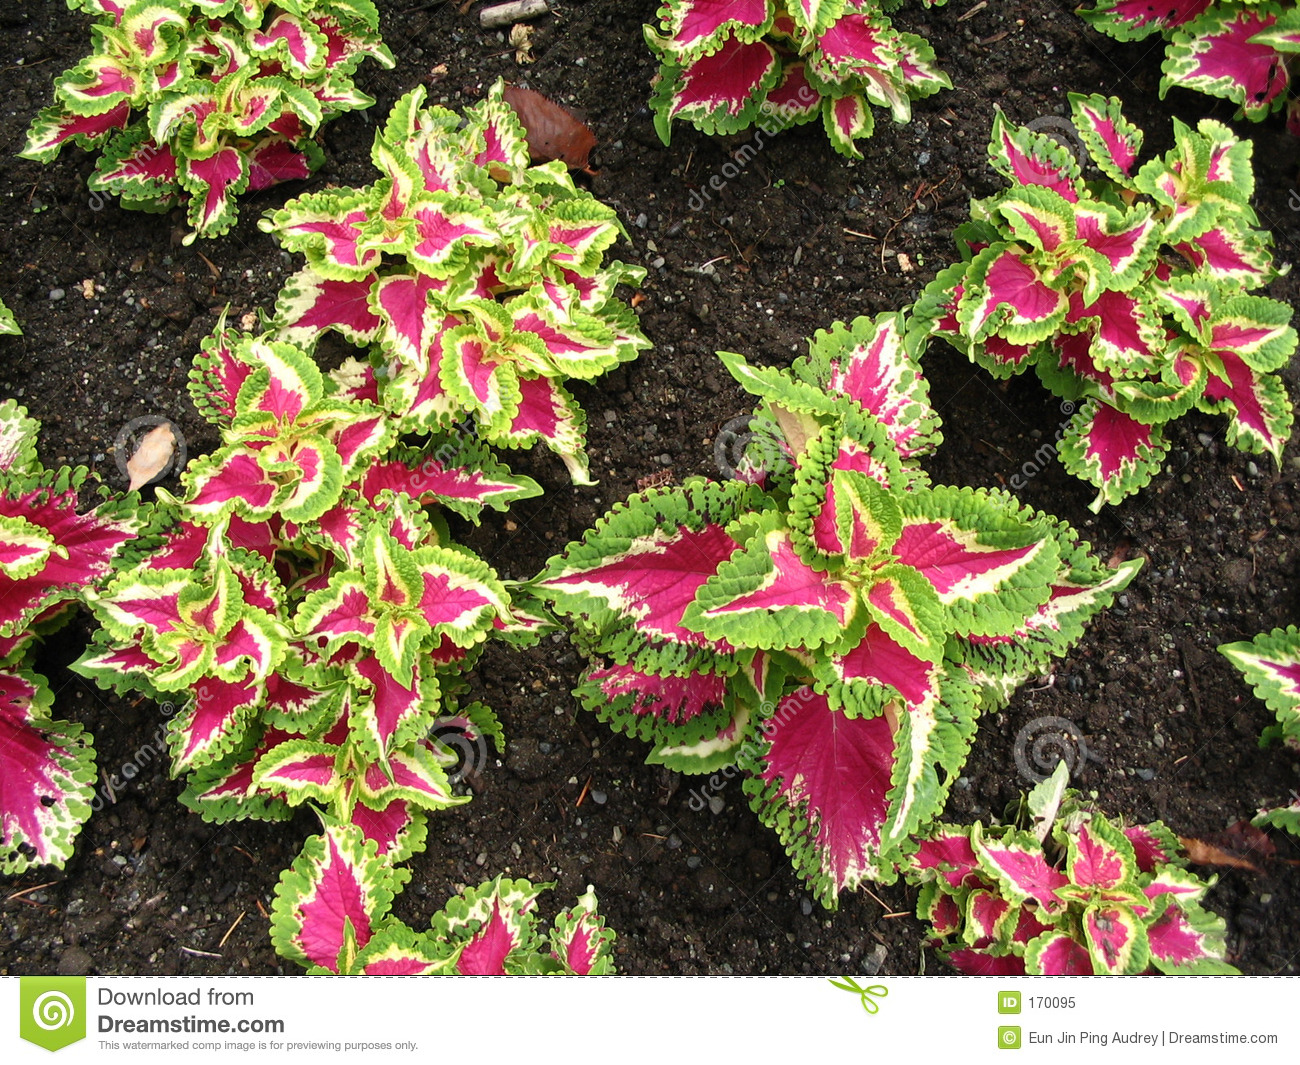 purpleleaved plants royalty free stock photo  image, Natural flower